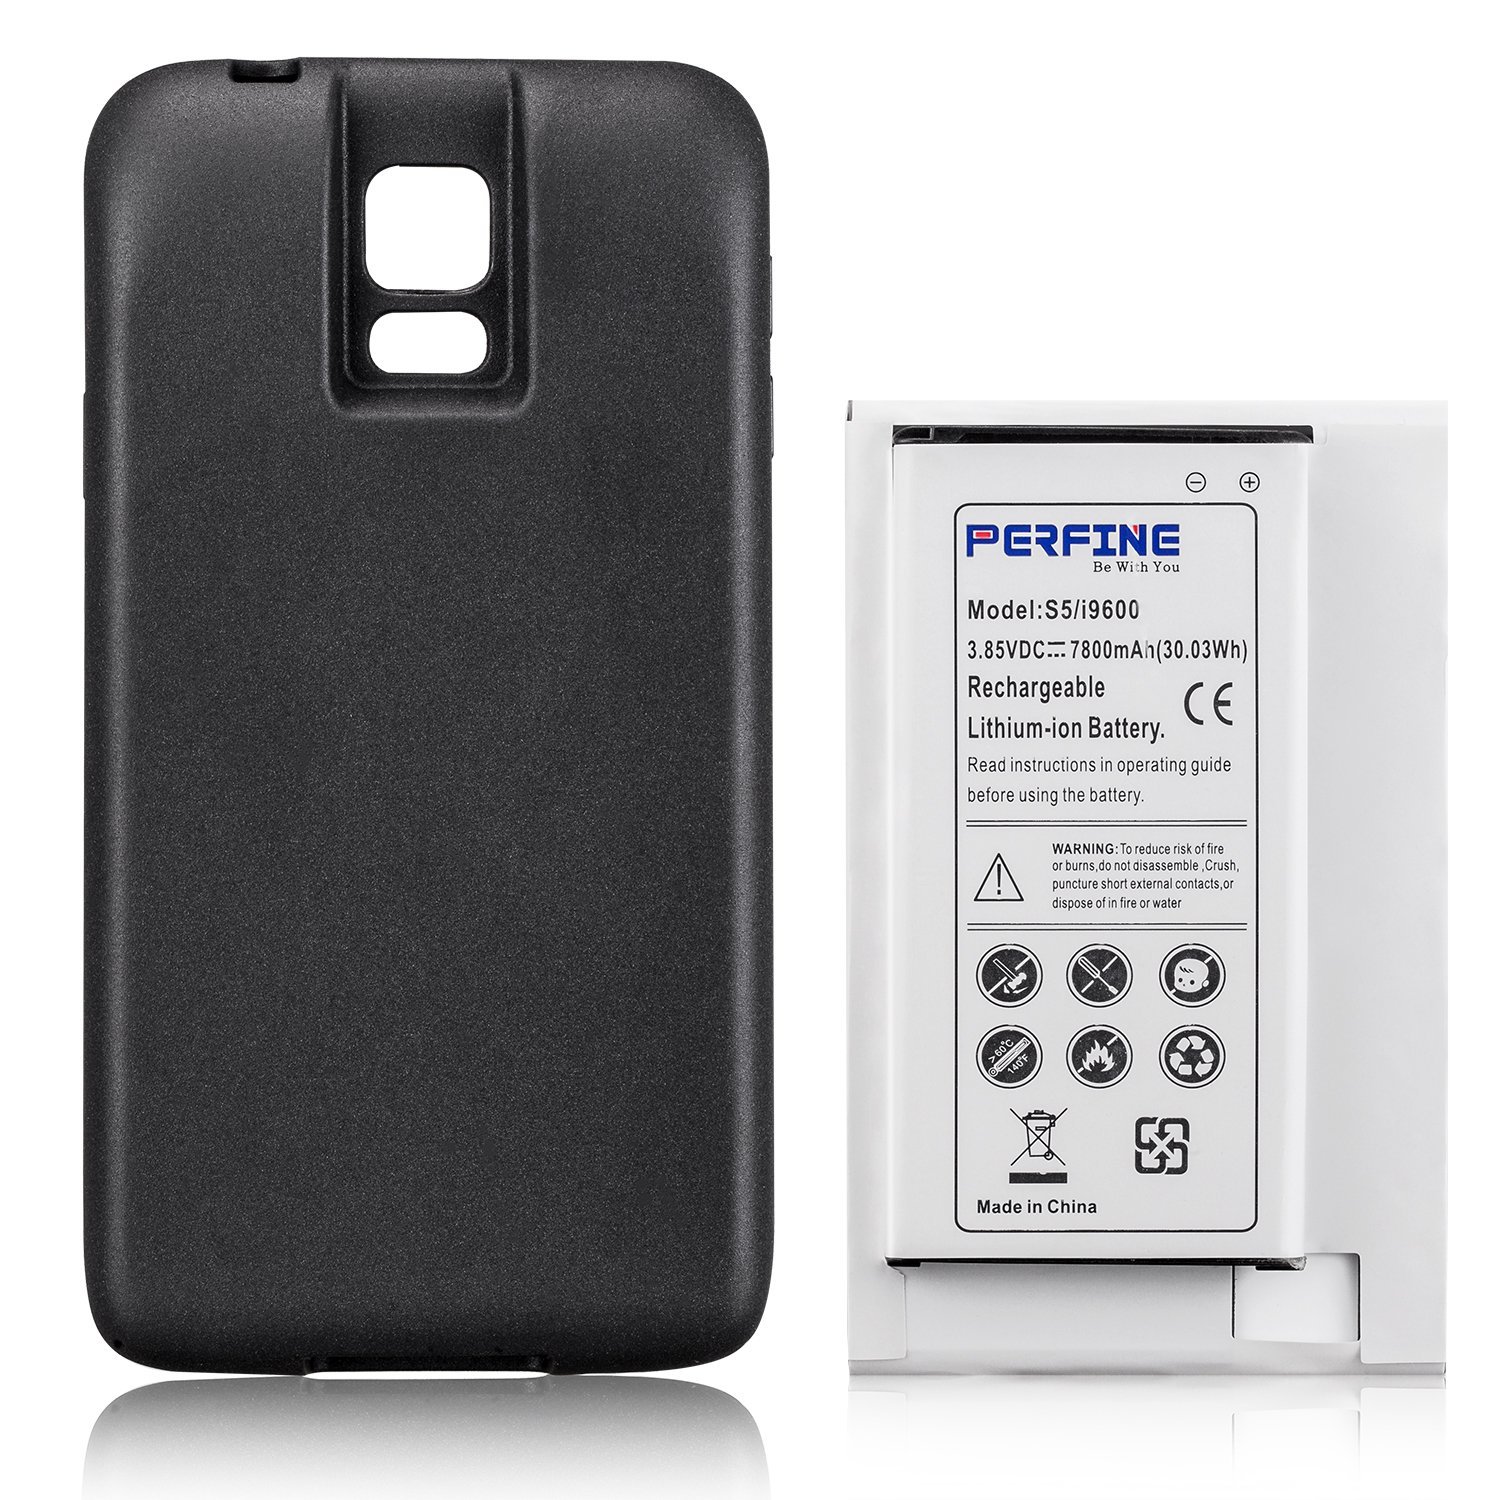 Perfine Samsung Galaxy S5 7800mAh Battery Replacement for I9600/EB-BG900BBU/SM-G900 with Full Edge Protective TPU Case[NFC/google wallet]